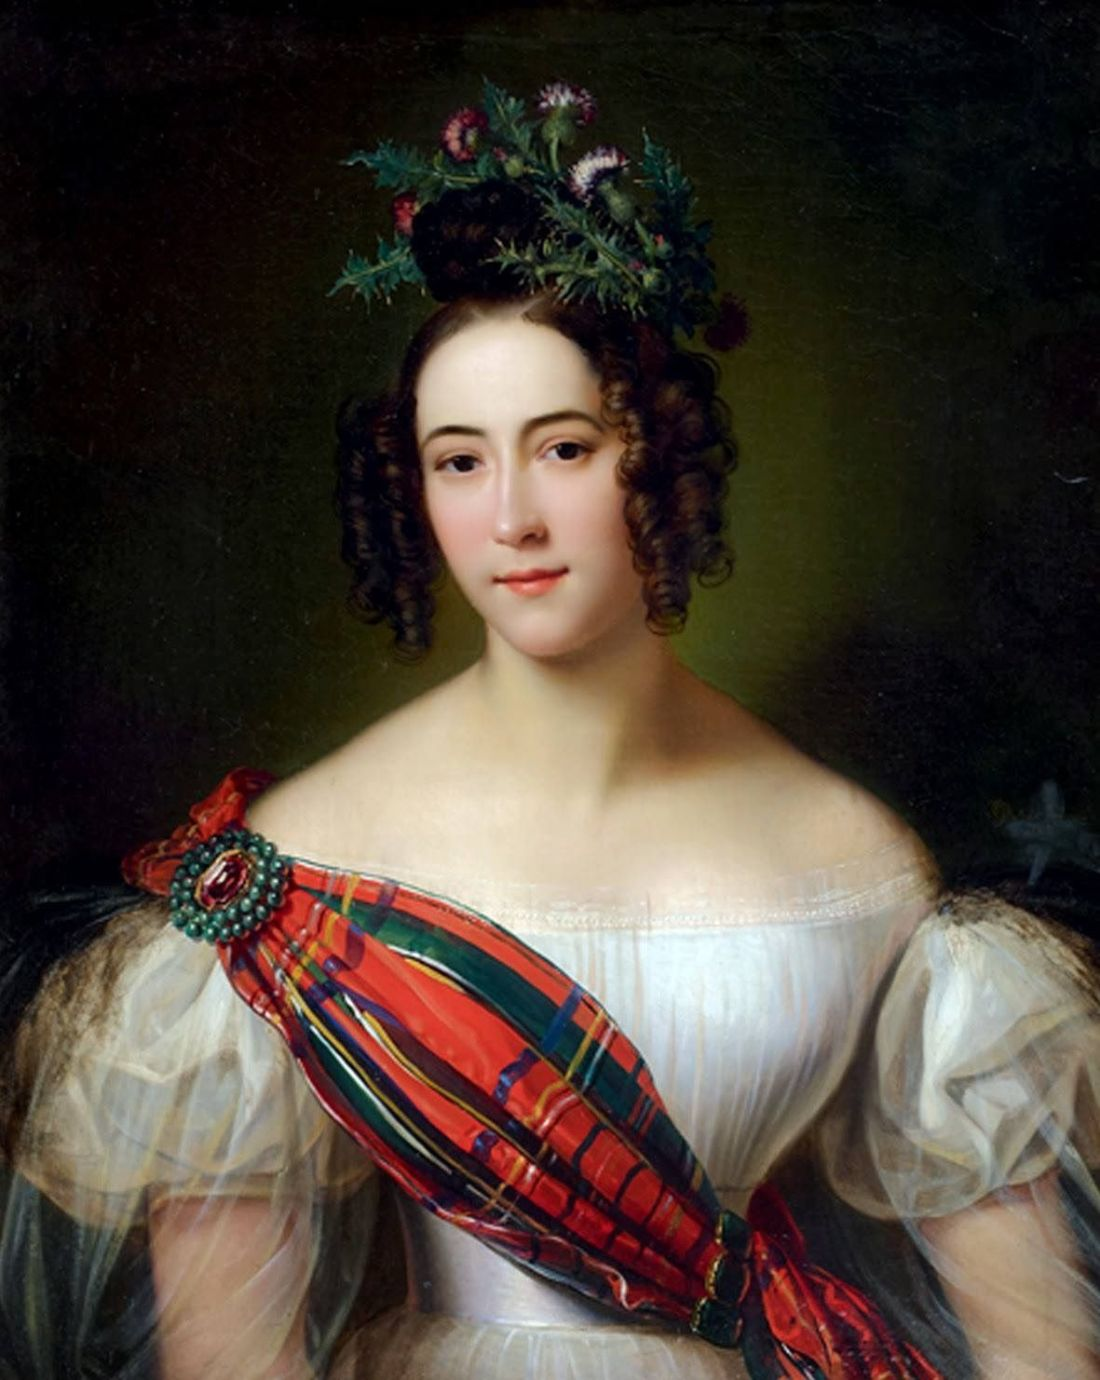 Portrait with a tartan sash, presumably of a Scottish lady. No date.